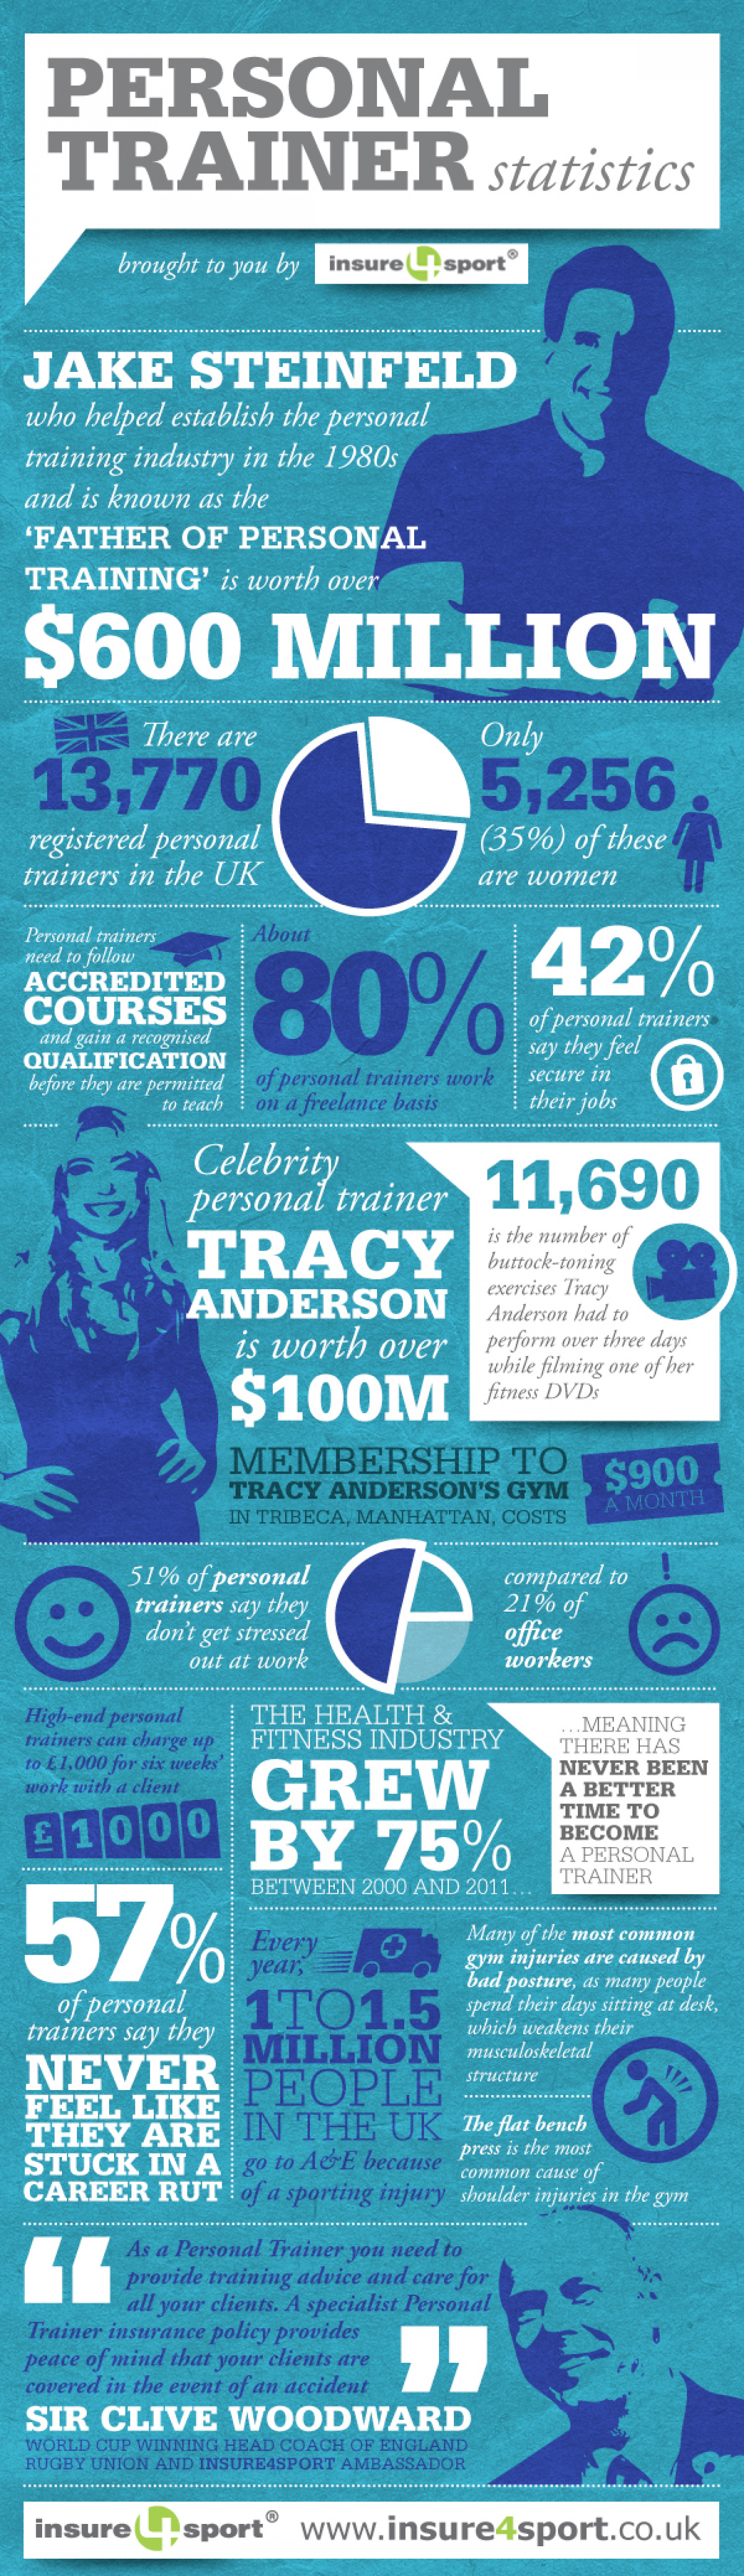 Personal Trainer Facts and Stats Infographic